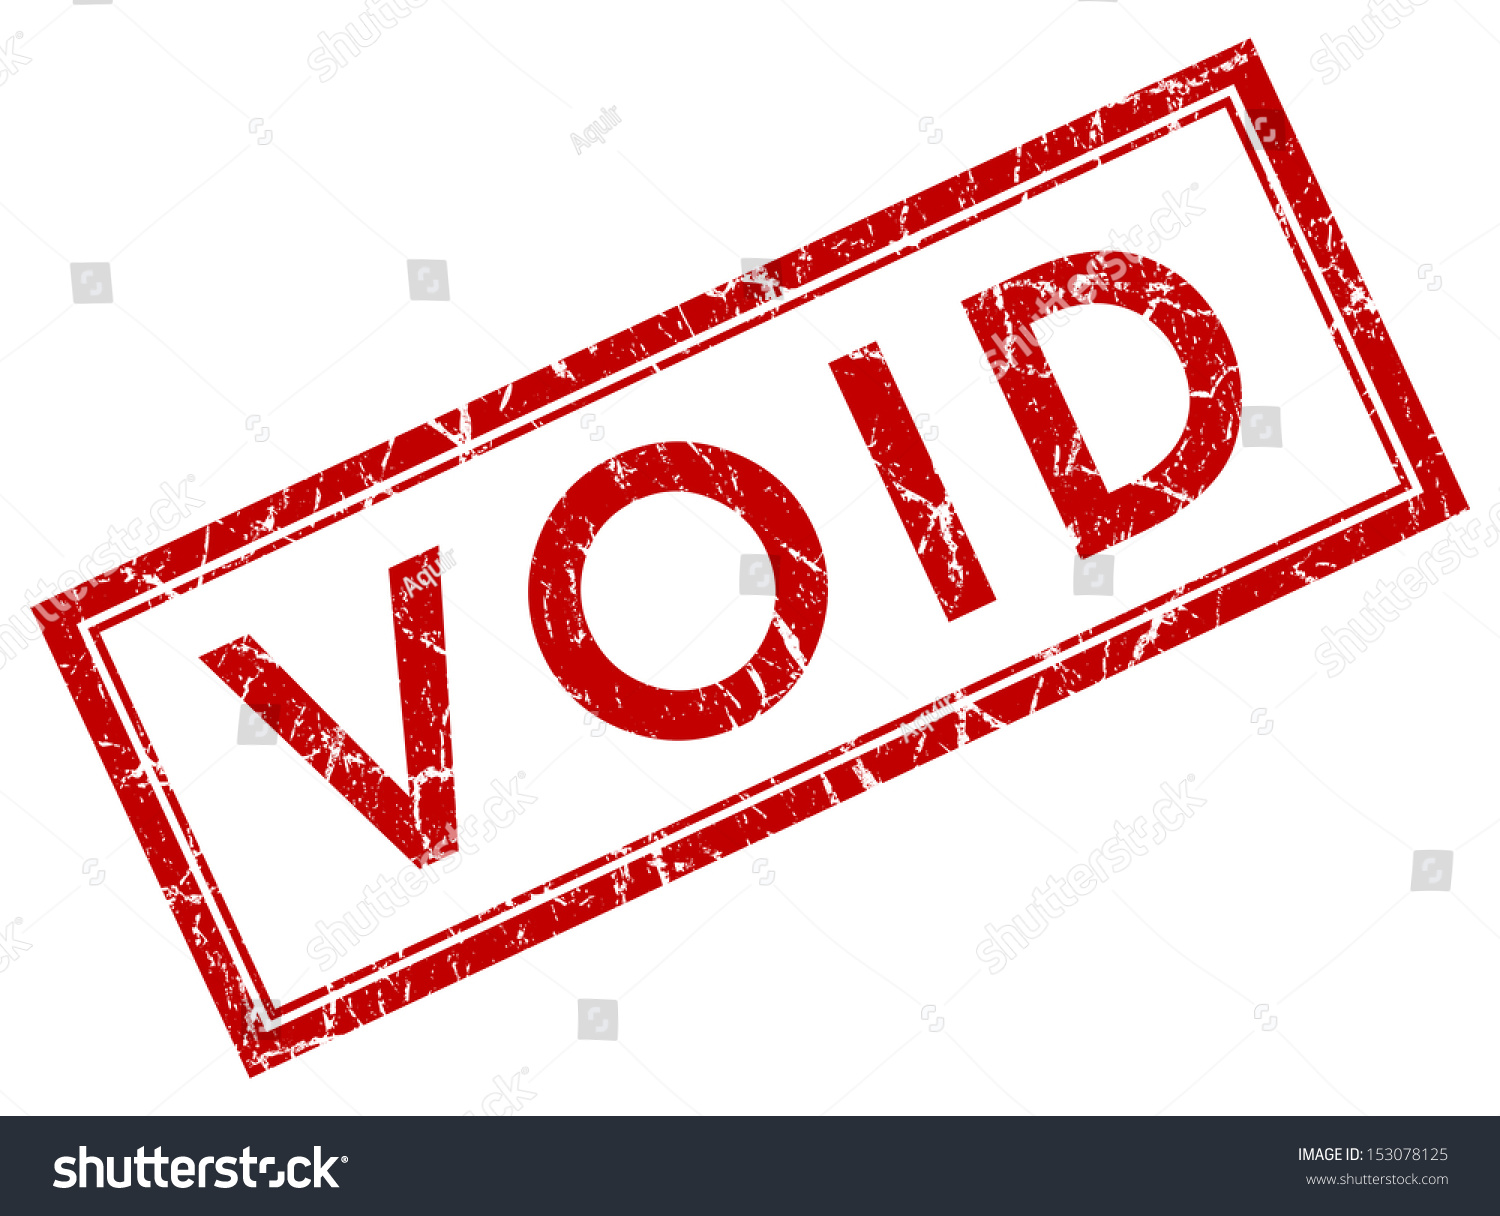 Void Square Grunge Red Stamp Stock Photo 153078125 ...